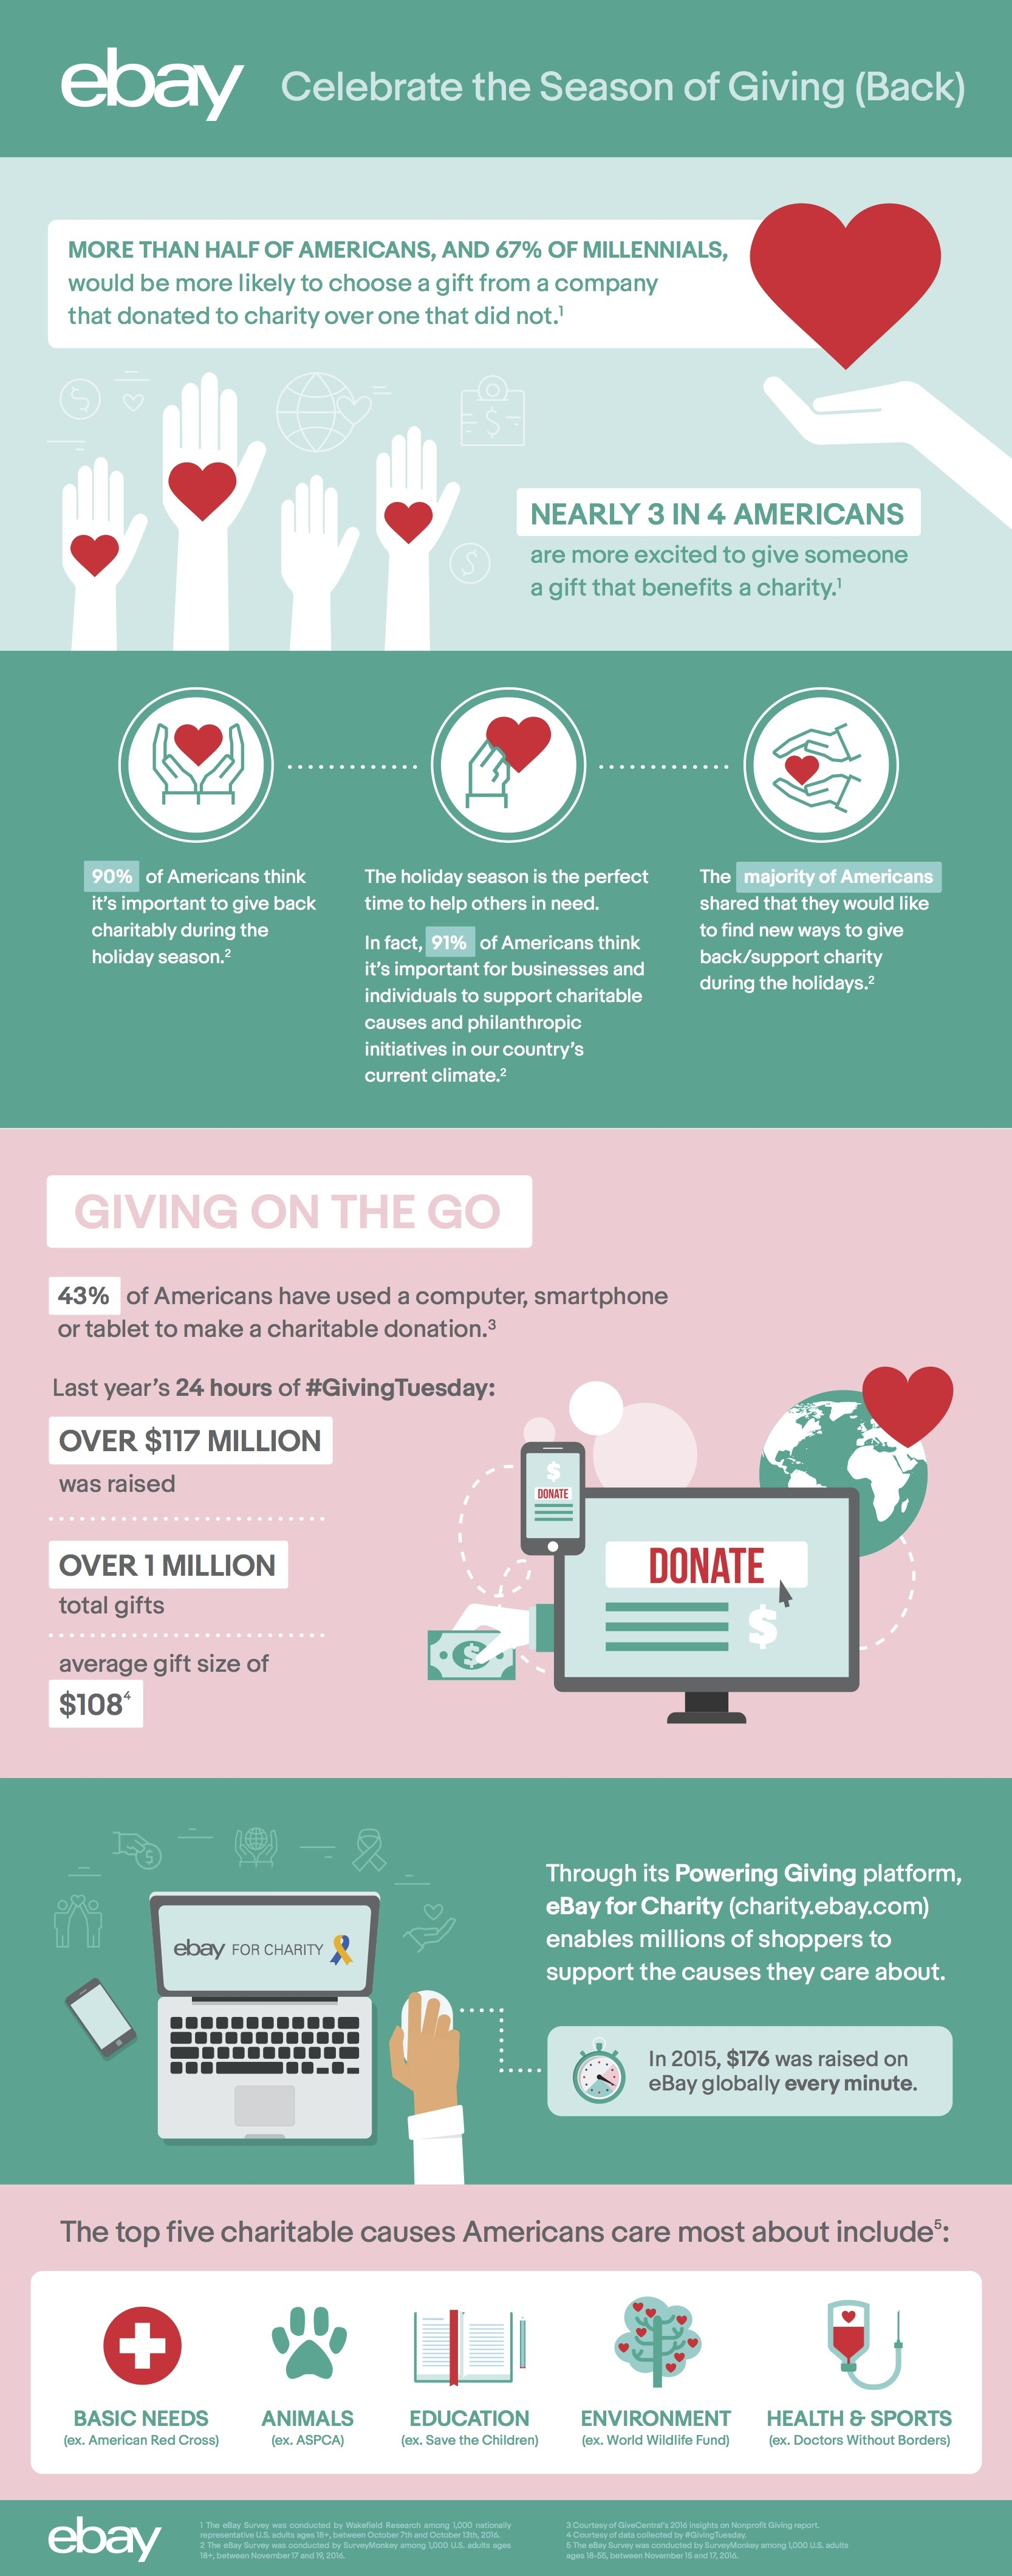 In honor of #GivingTuesday, eBay uncovered how shoppers are giving back this holiday season and throughout the year. (Graphic: Business Wire)